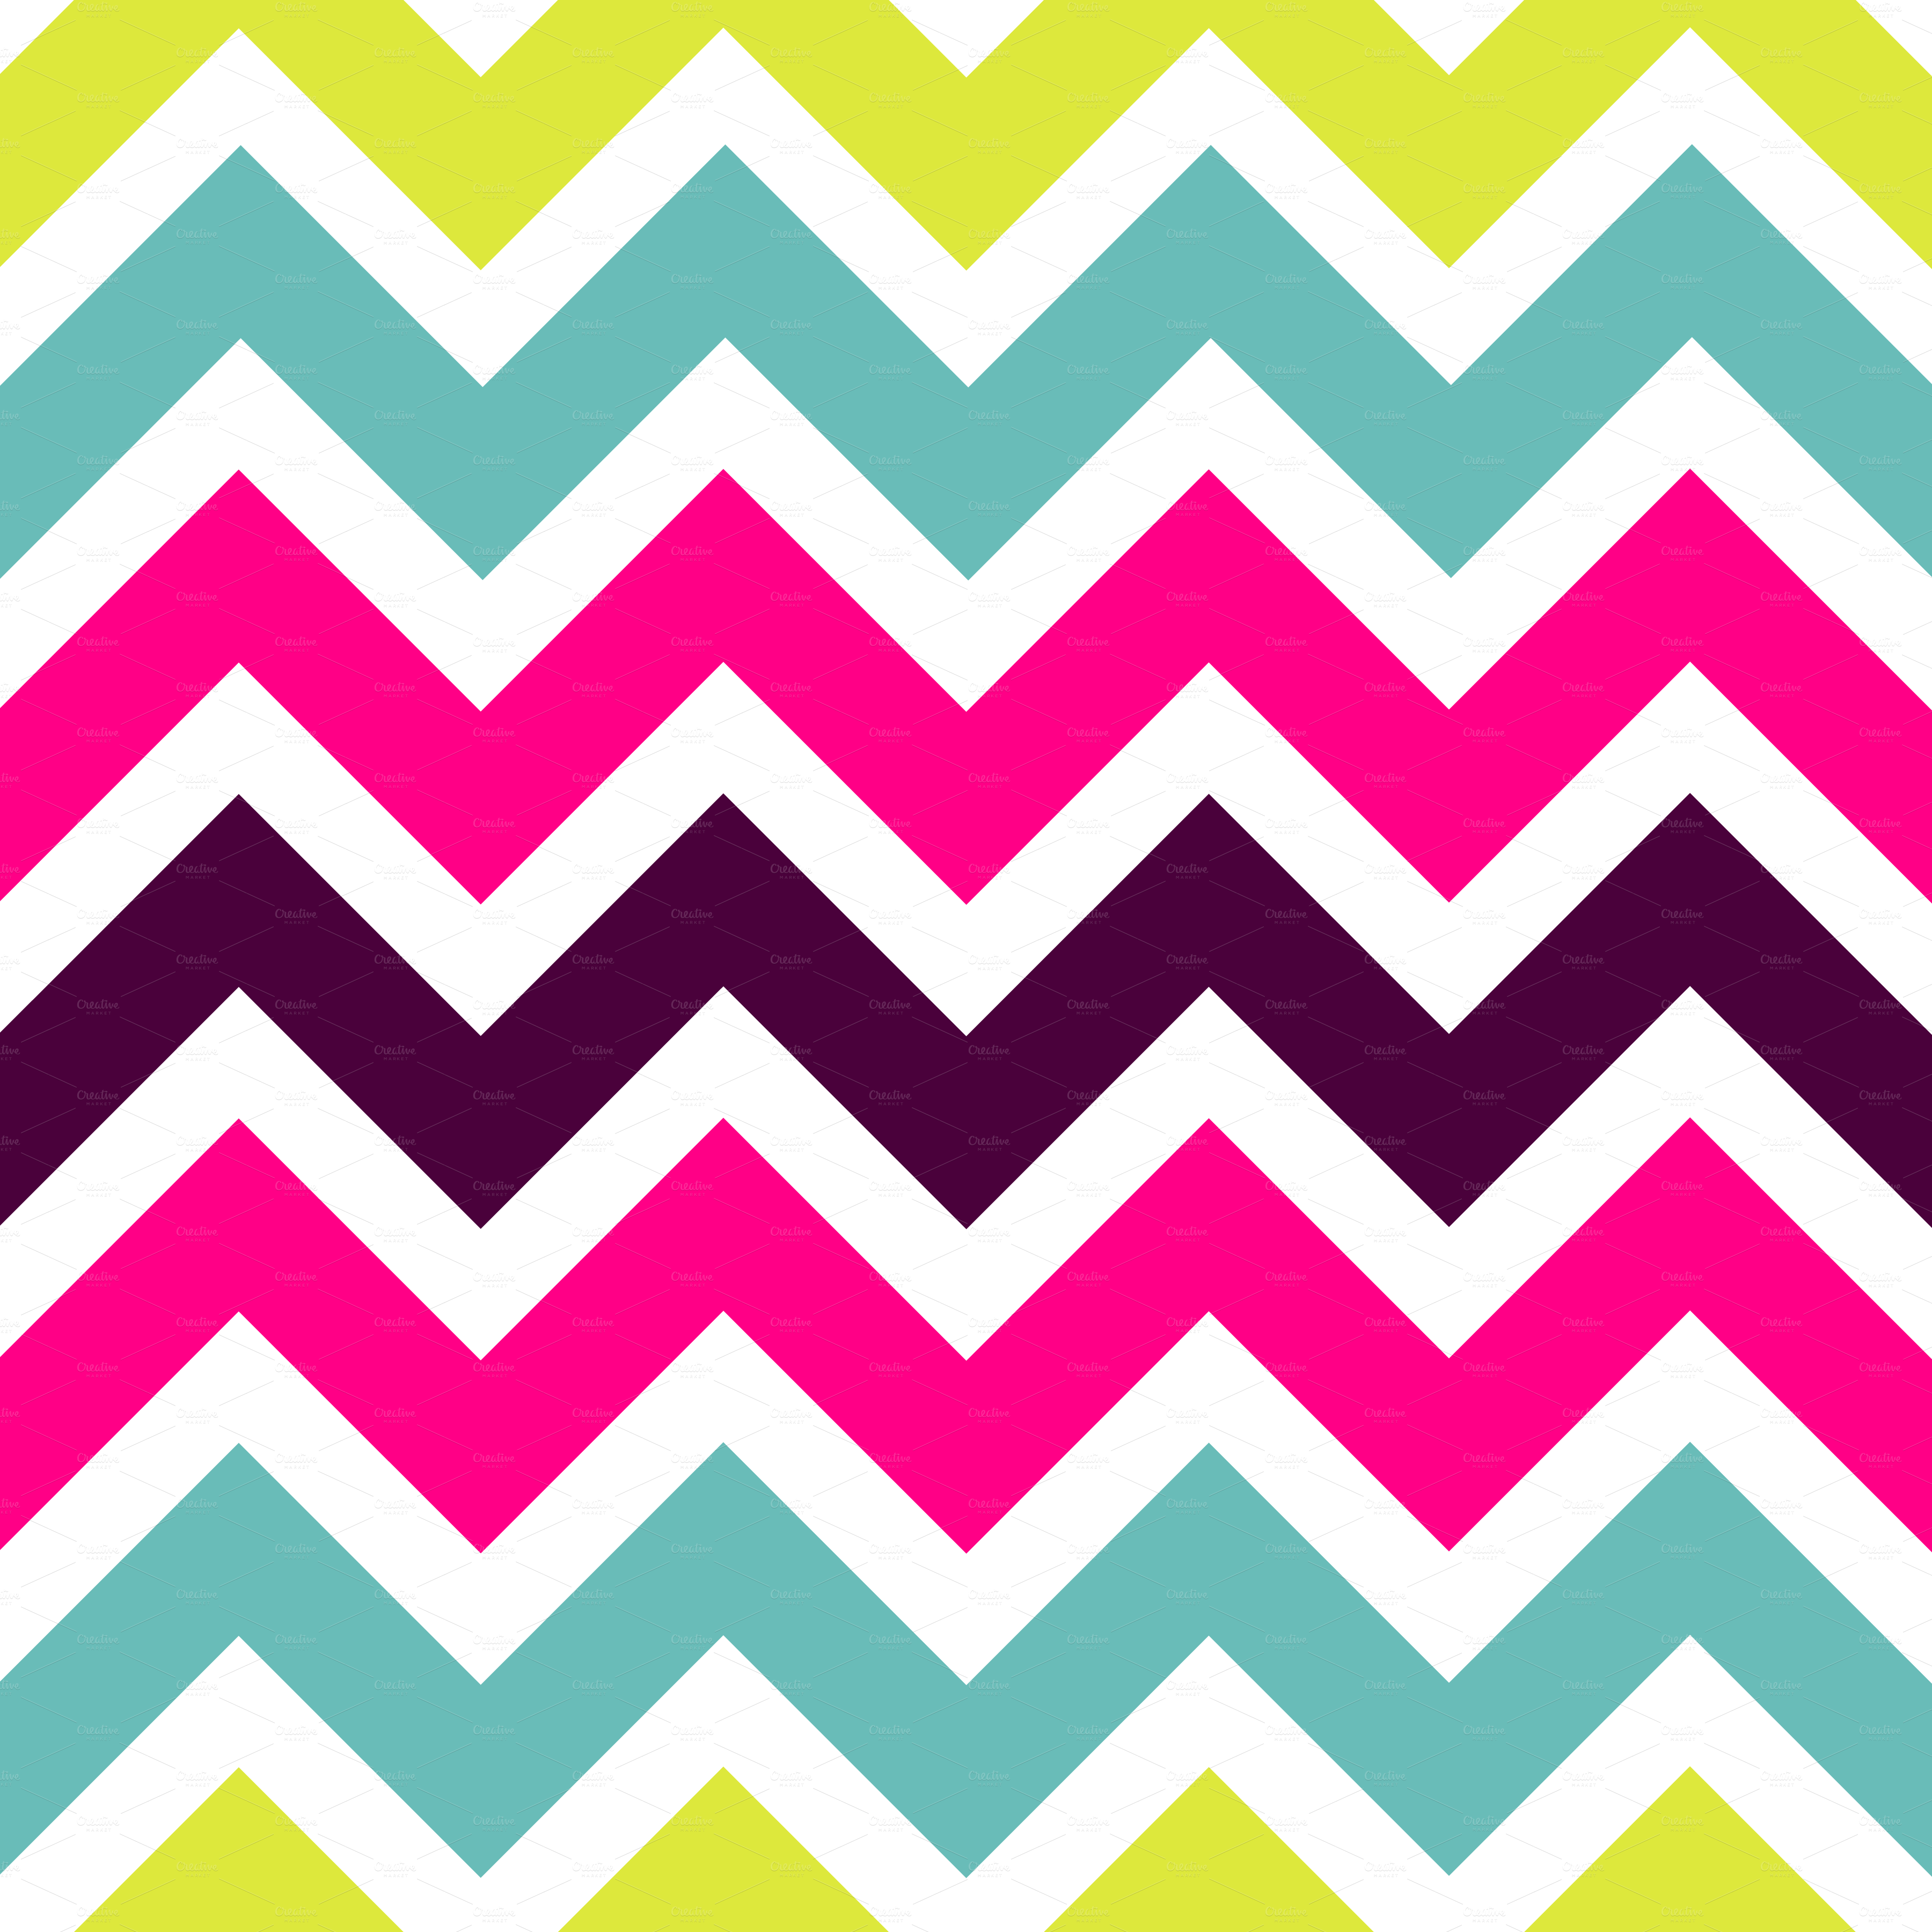 Pattern clipart space Zig Cliparts Cliparts Zig Zag